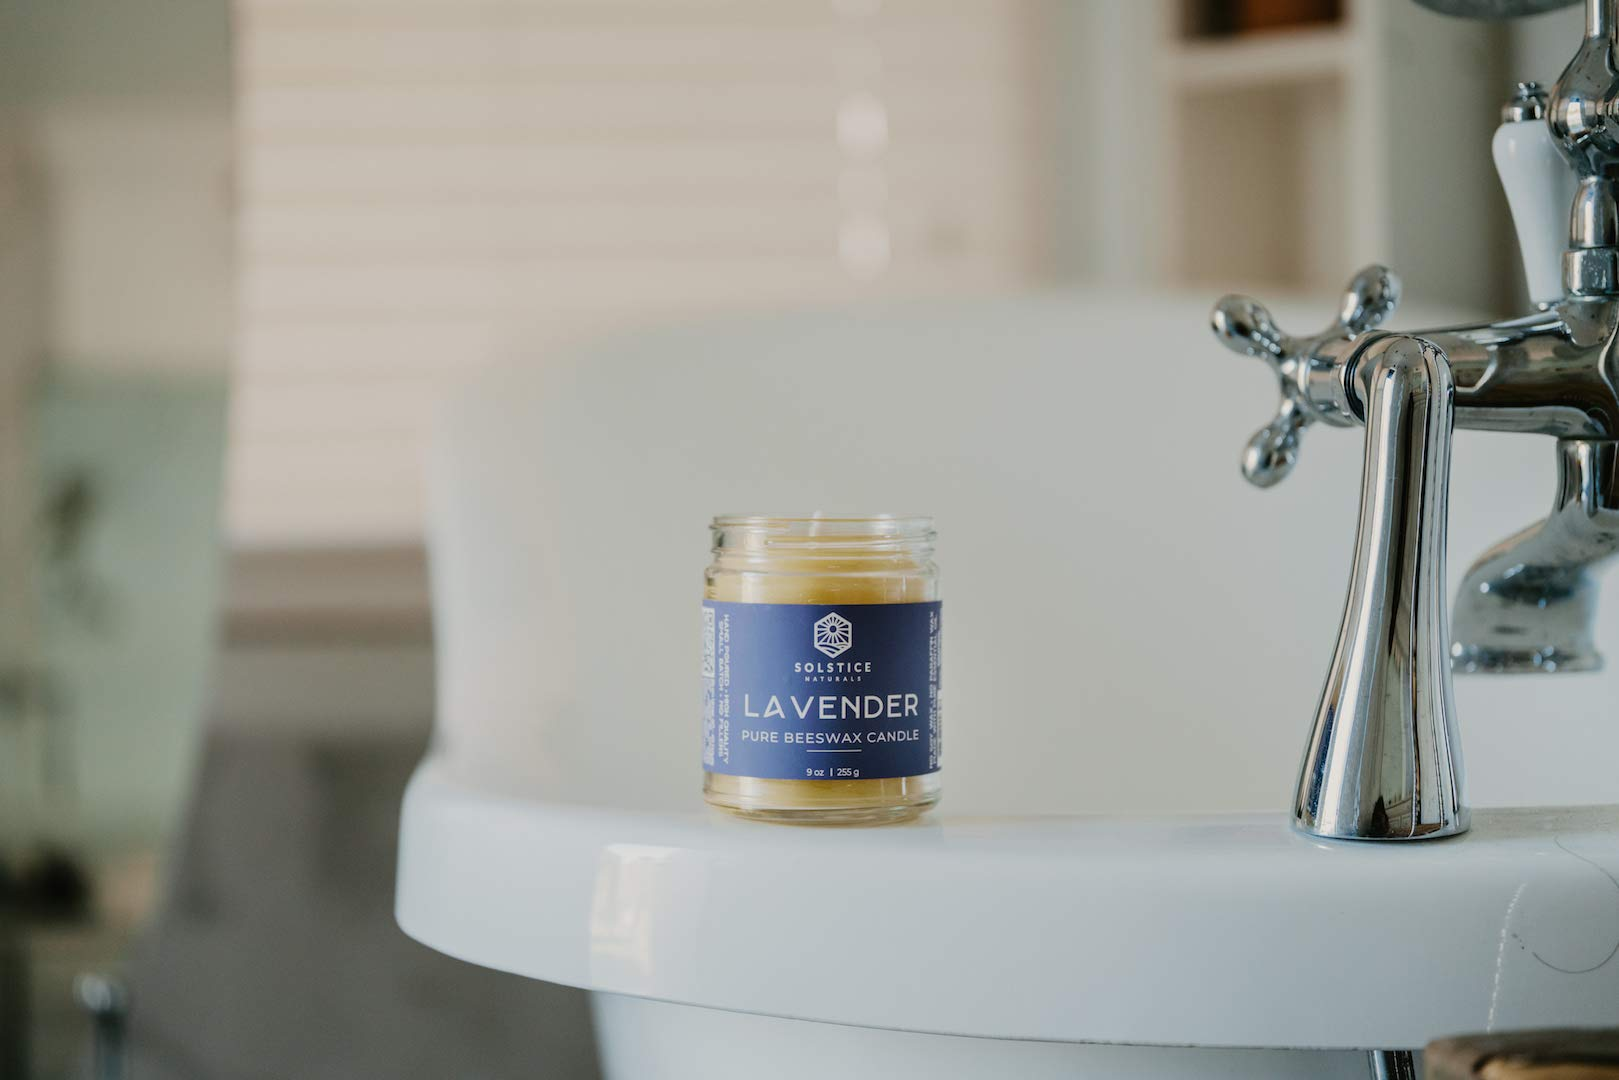 Lavender Scented All Natural 100% Pure Beeswax Aromatherapy Candle Made with Essential Oil, 9 oz - Great for Home Bathroom Living Room Office Study Yoga Spa by Solstice Naturals (Image #6)